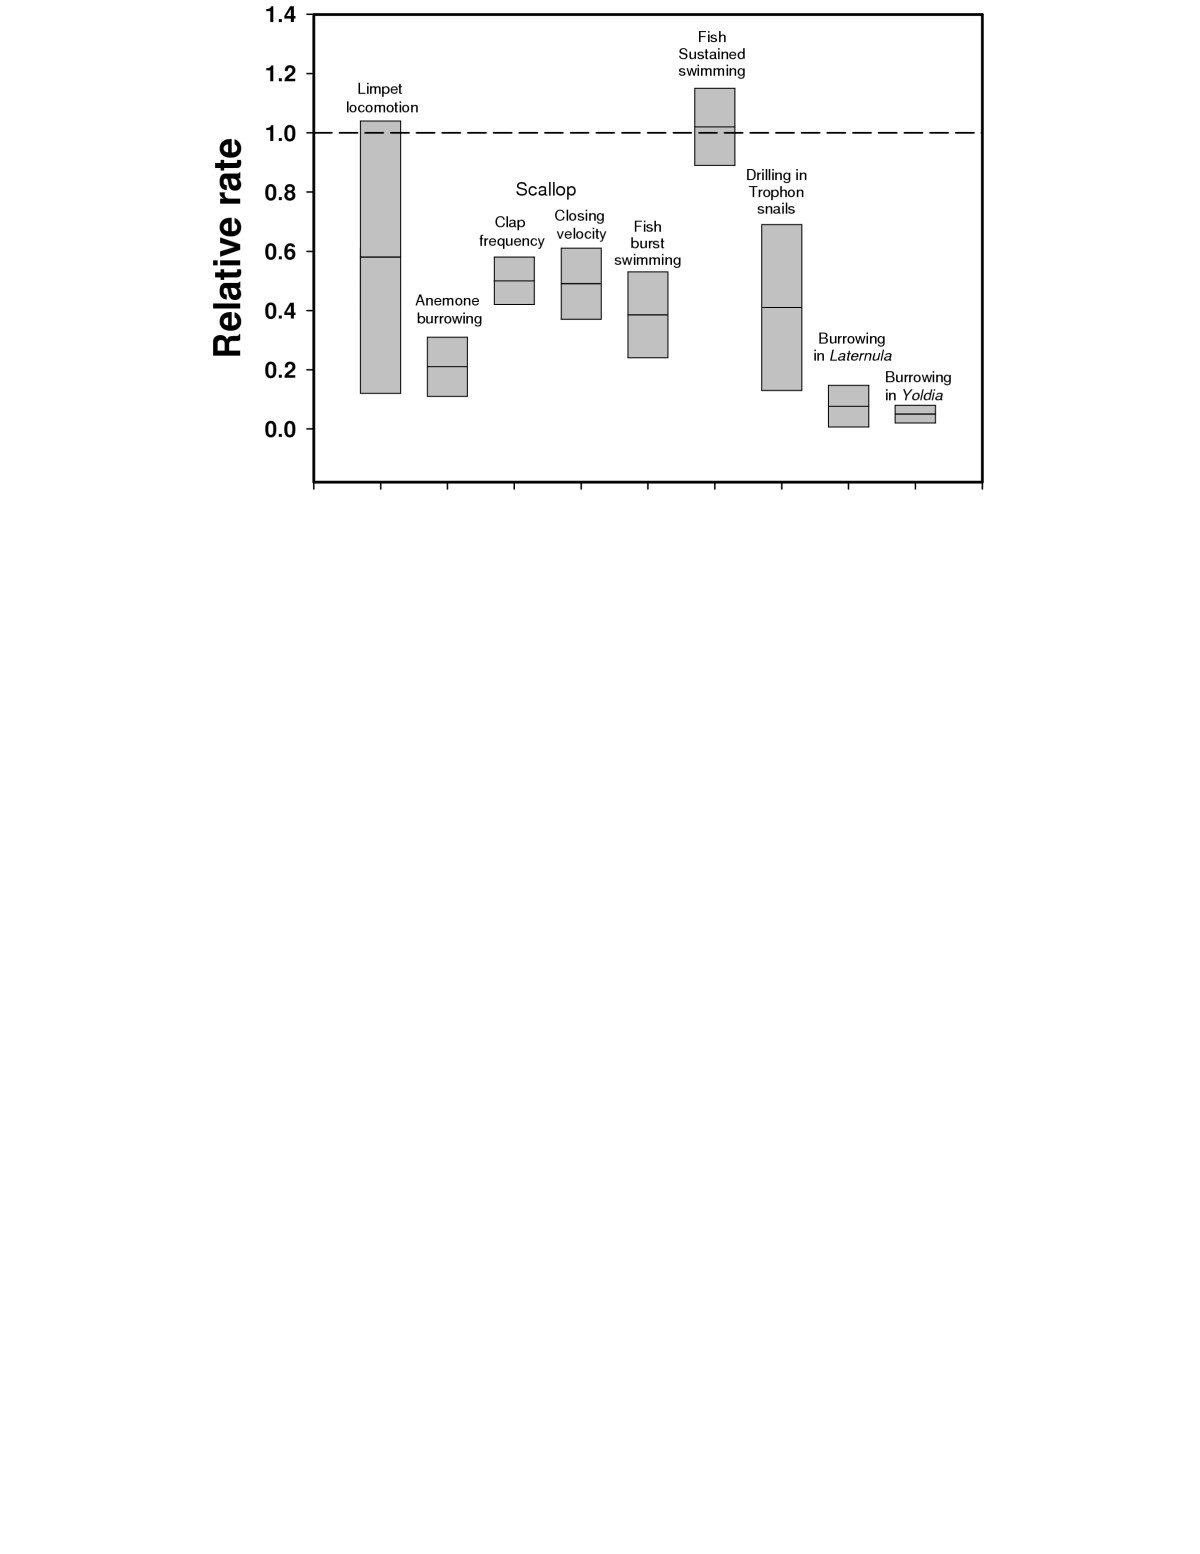 http://static-content.springer.com/image/art%3A10.1186%2F1742-9994-2-9/MediaObjects/12983_2005_Article_15_Fig3_HTML.jpg